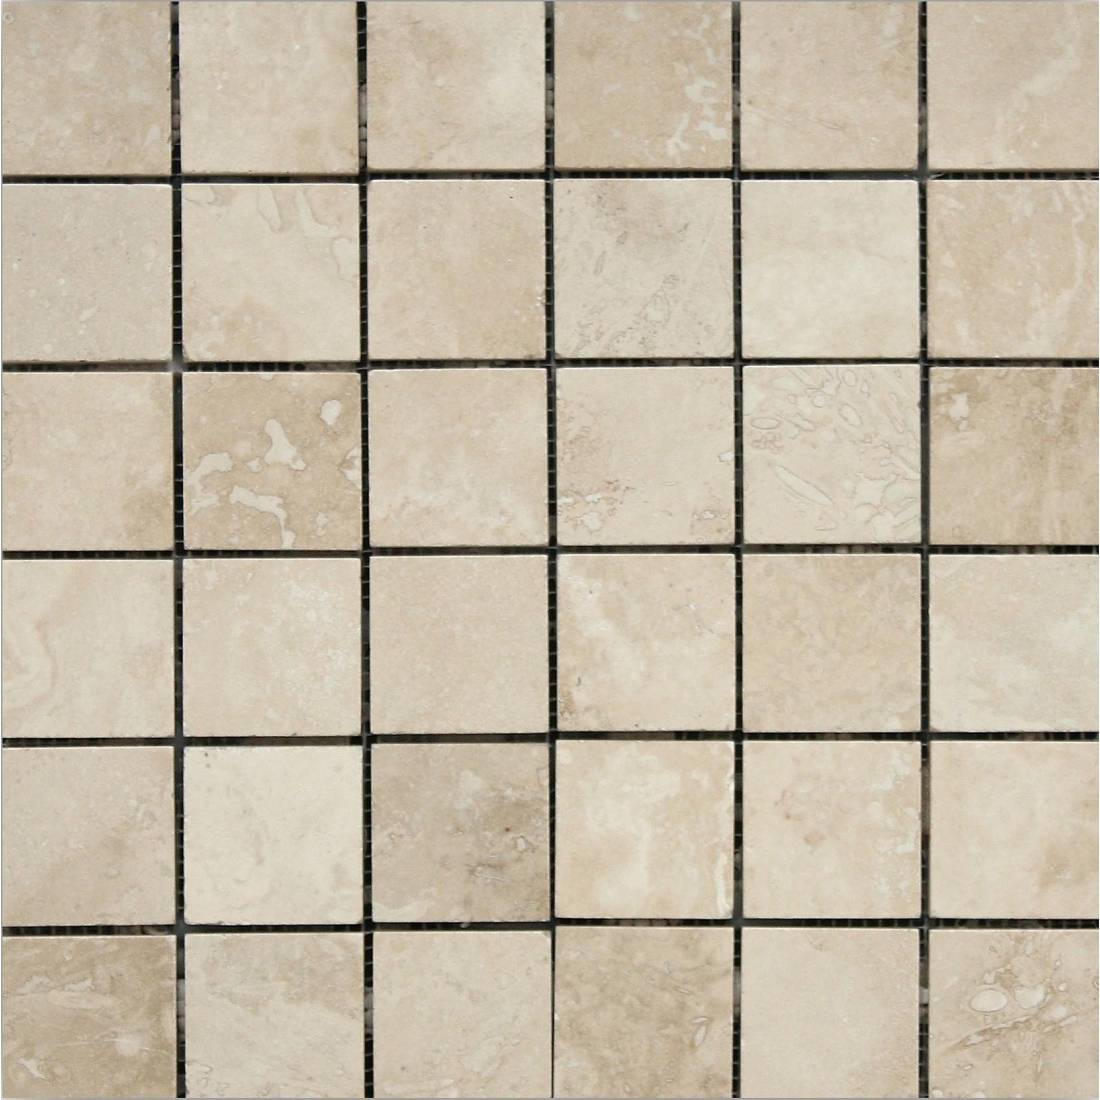 Travertine White Square 30.5x30.5 White Polished 1